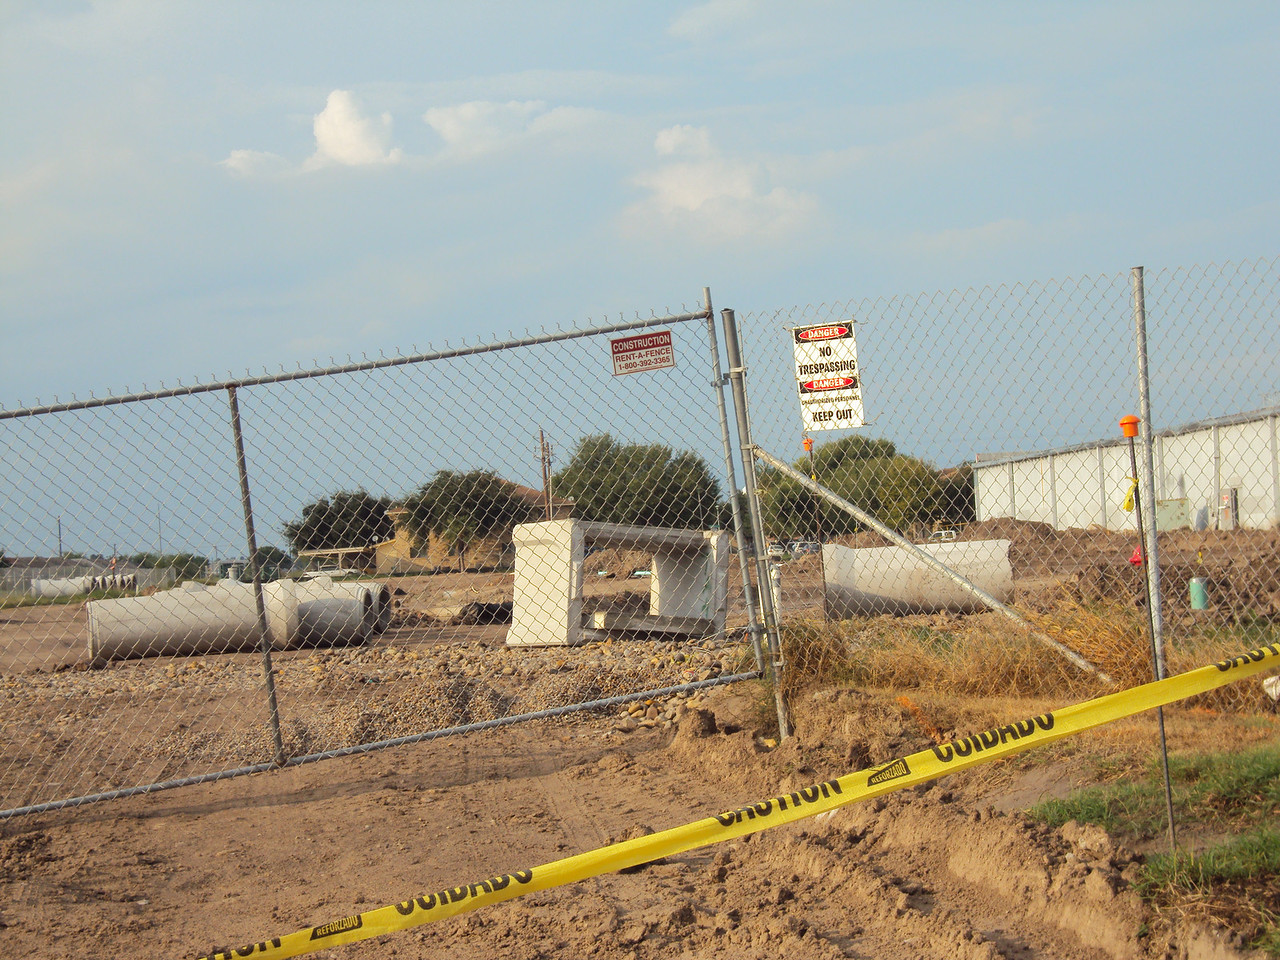 9/26/2010 - West side of the building (rear); off of Nolana.